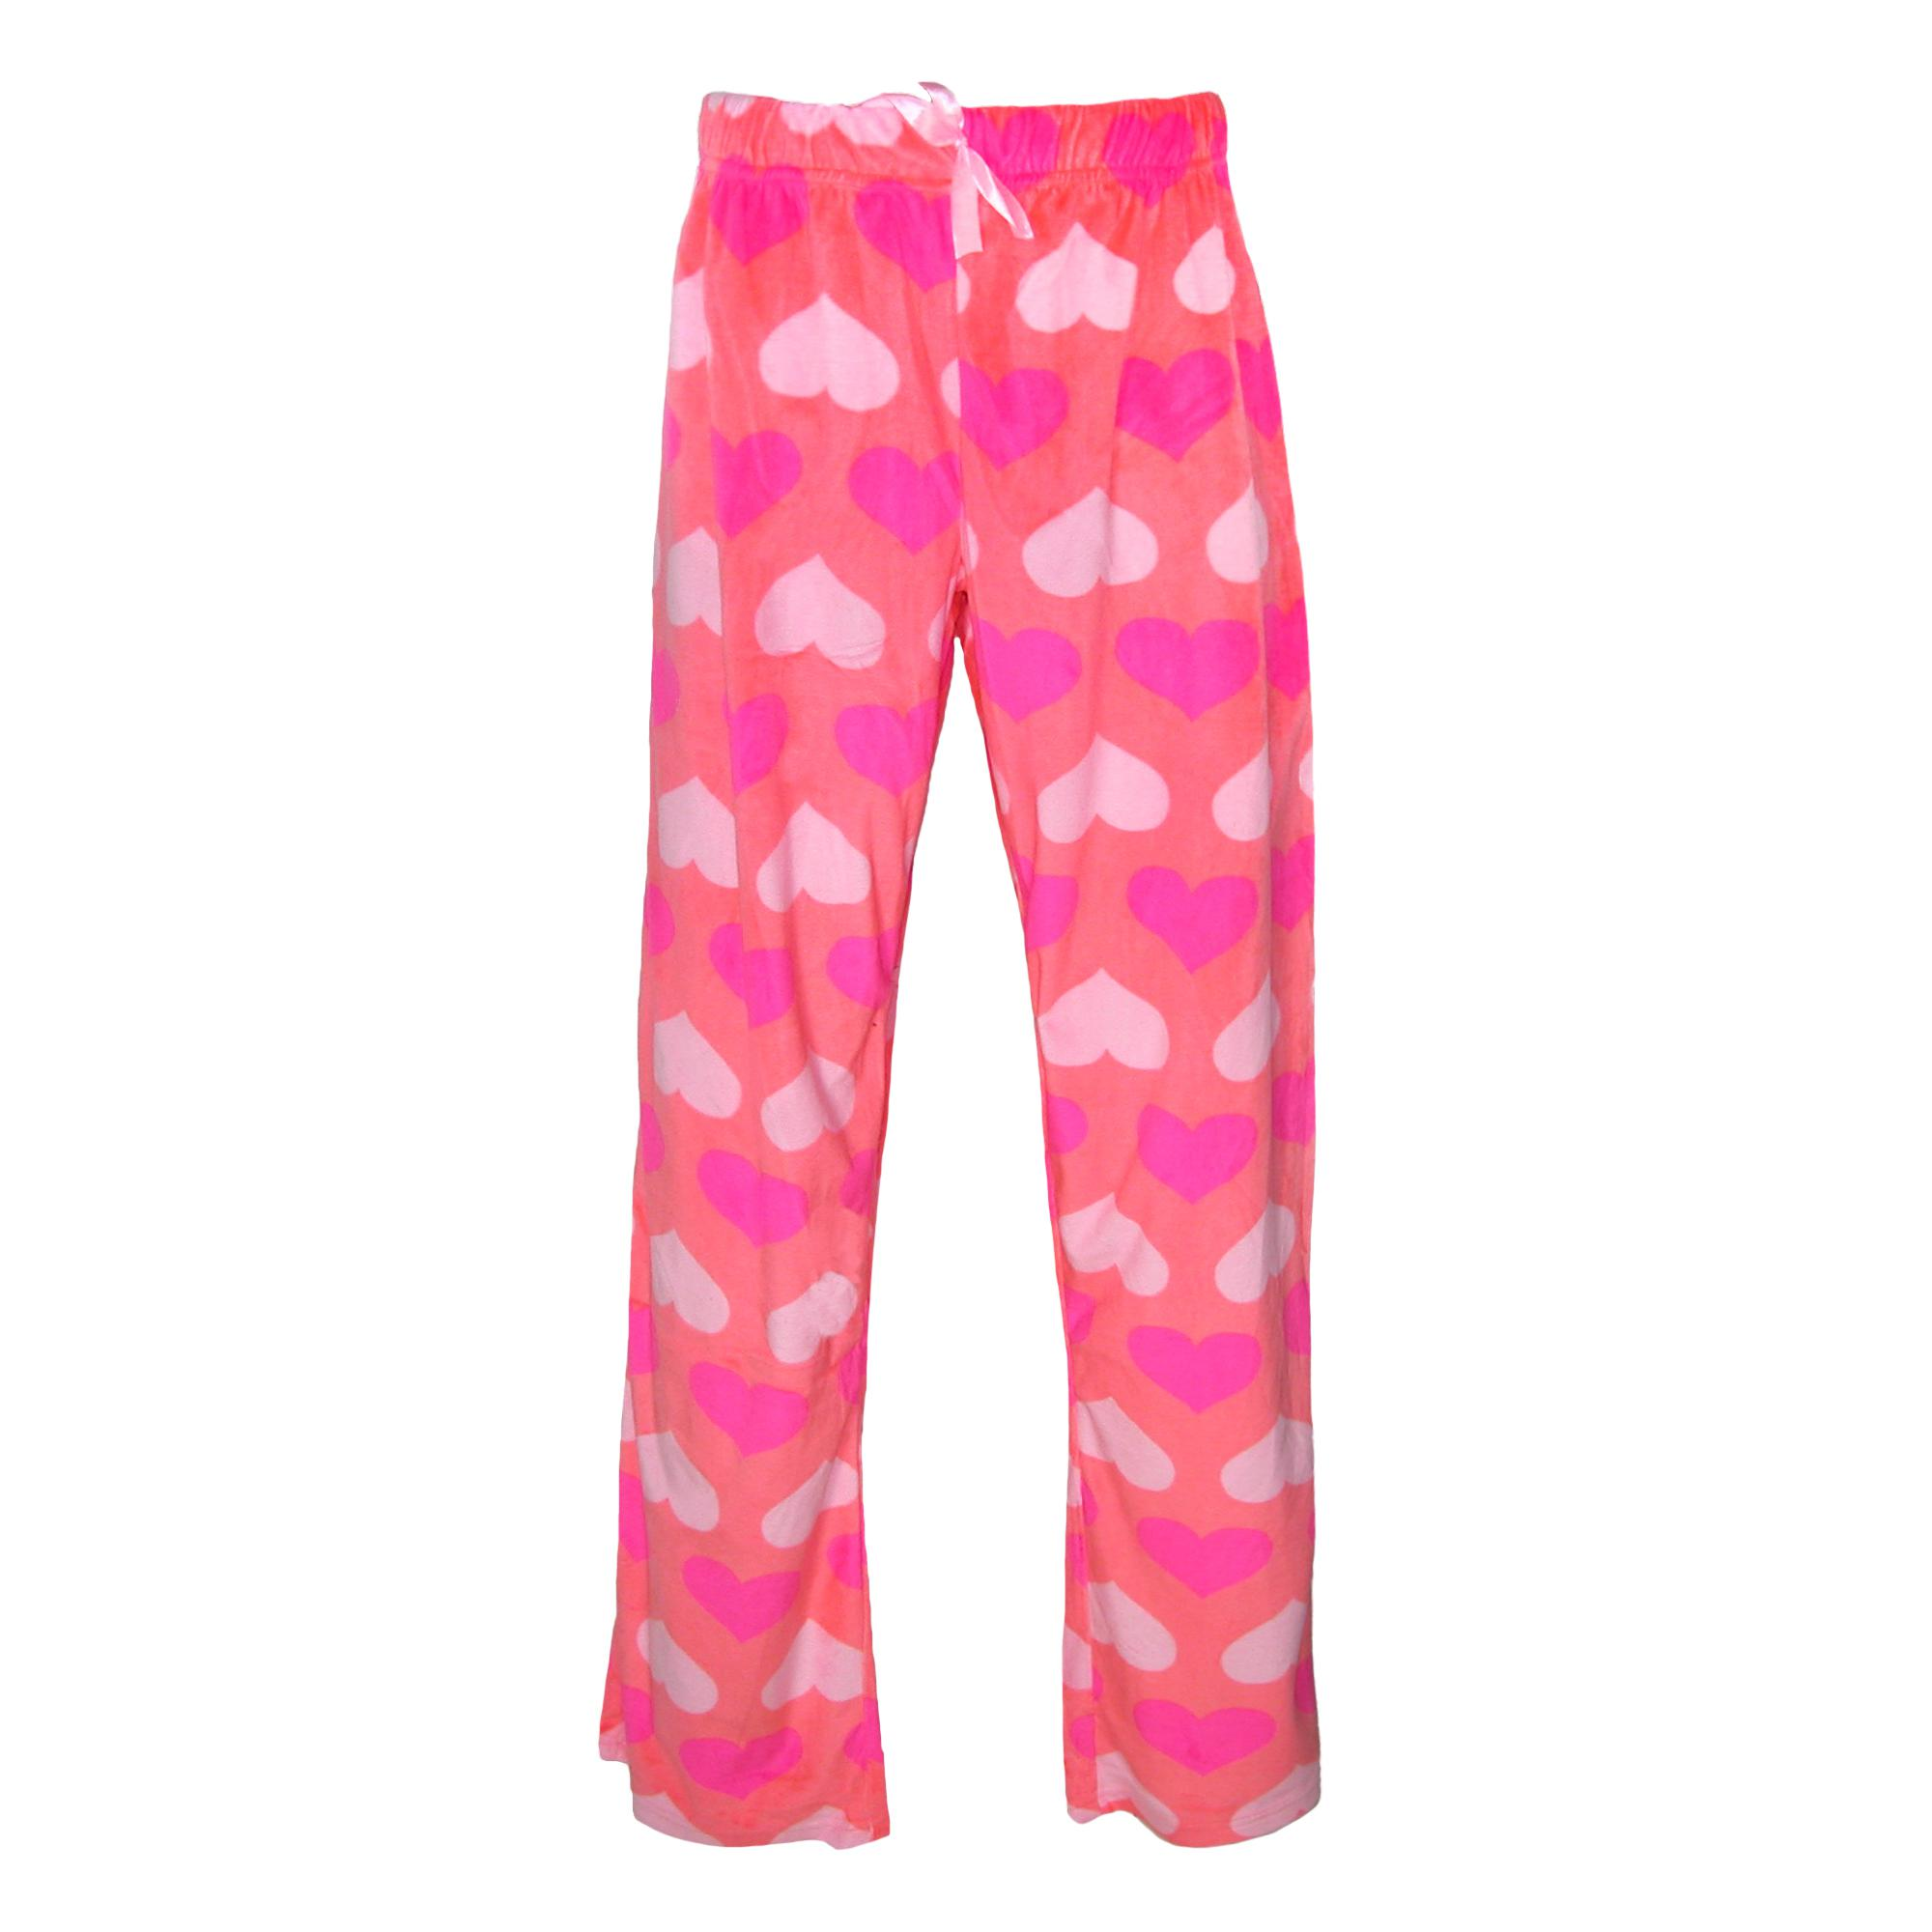 Mentally Exhausted Womens Super Soft Print Pajama Pants